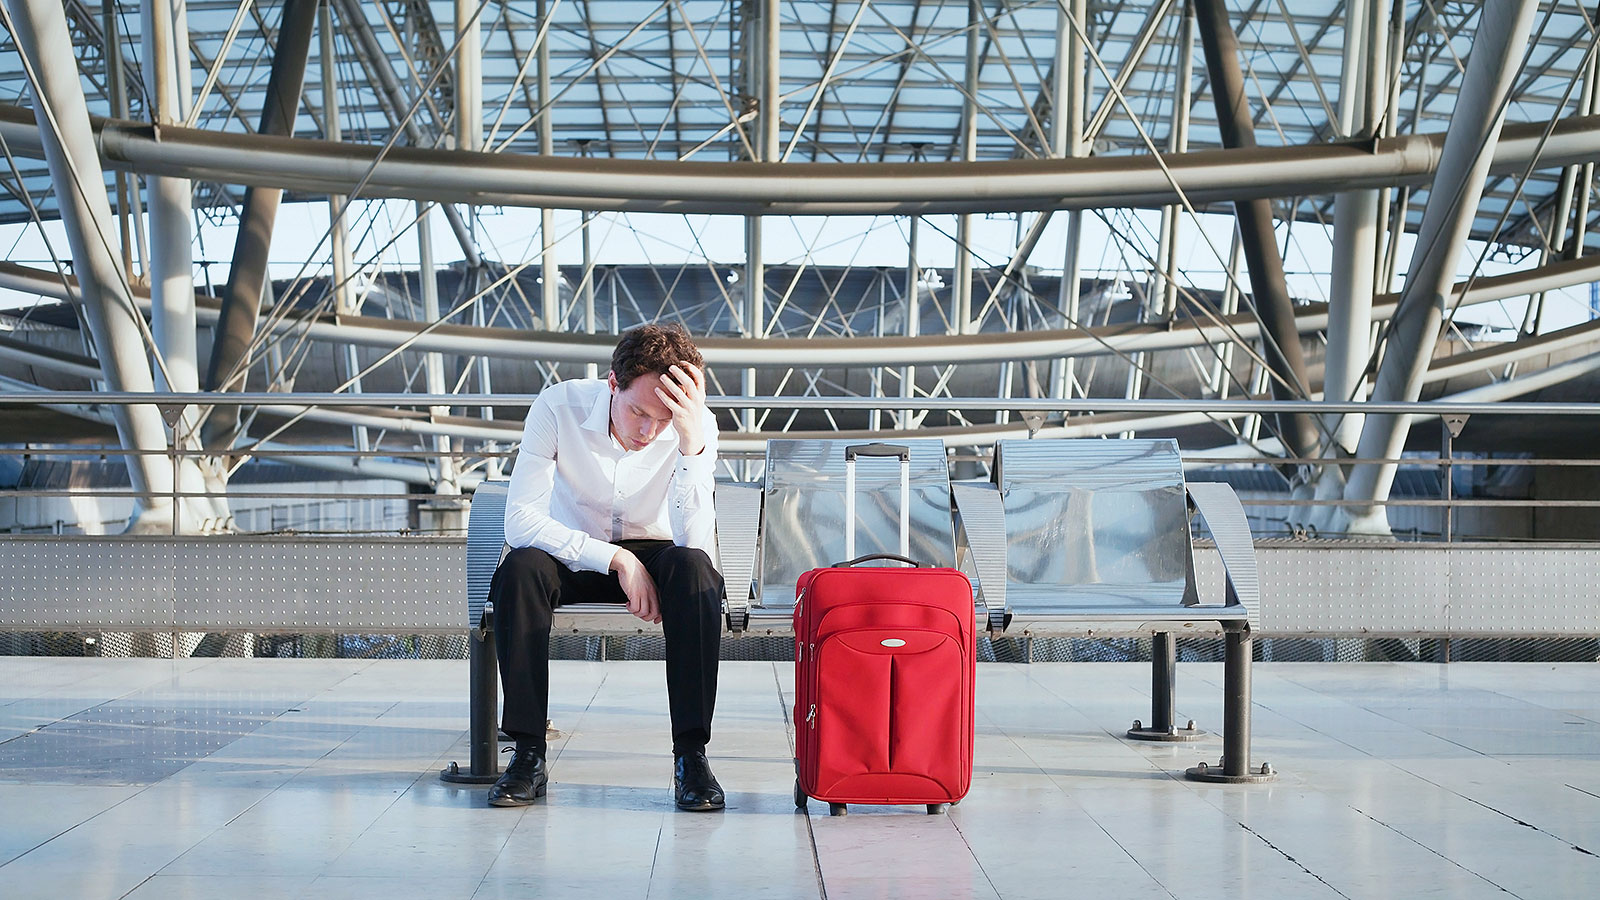 What stresses travelers out the most at an airport might surprise you